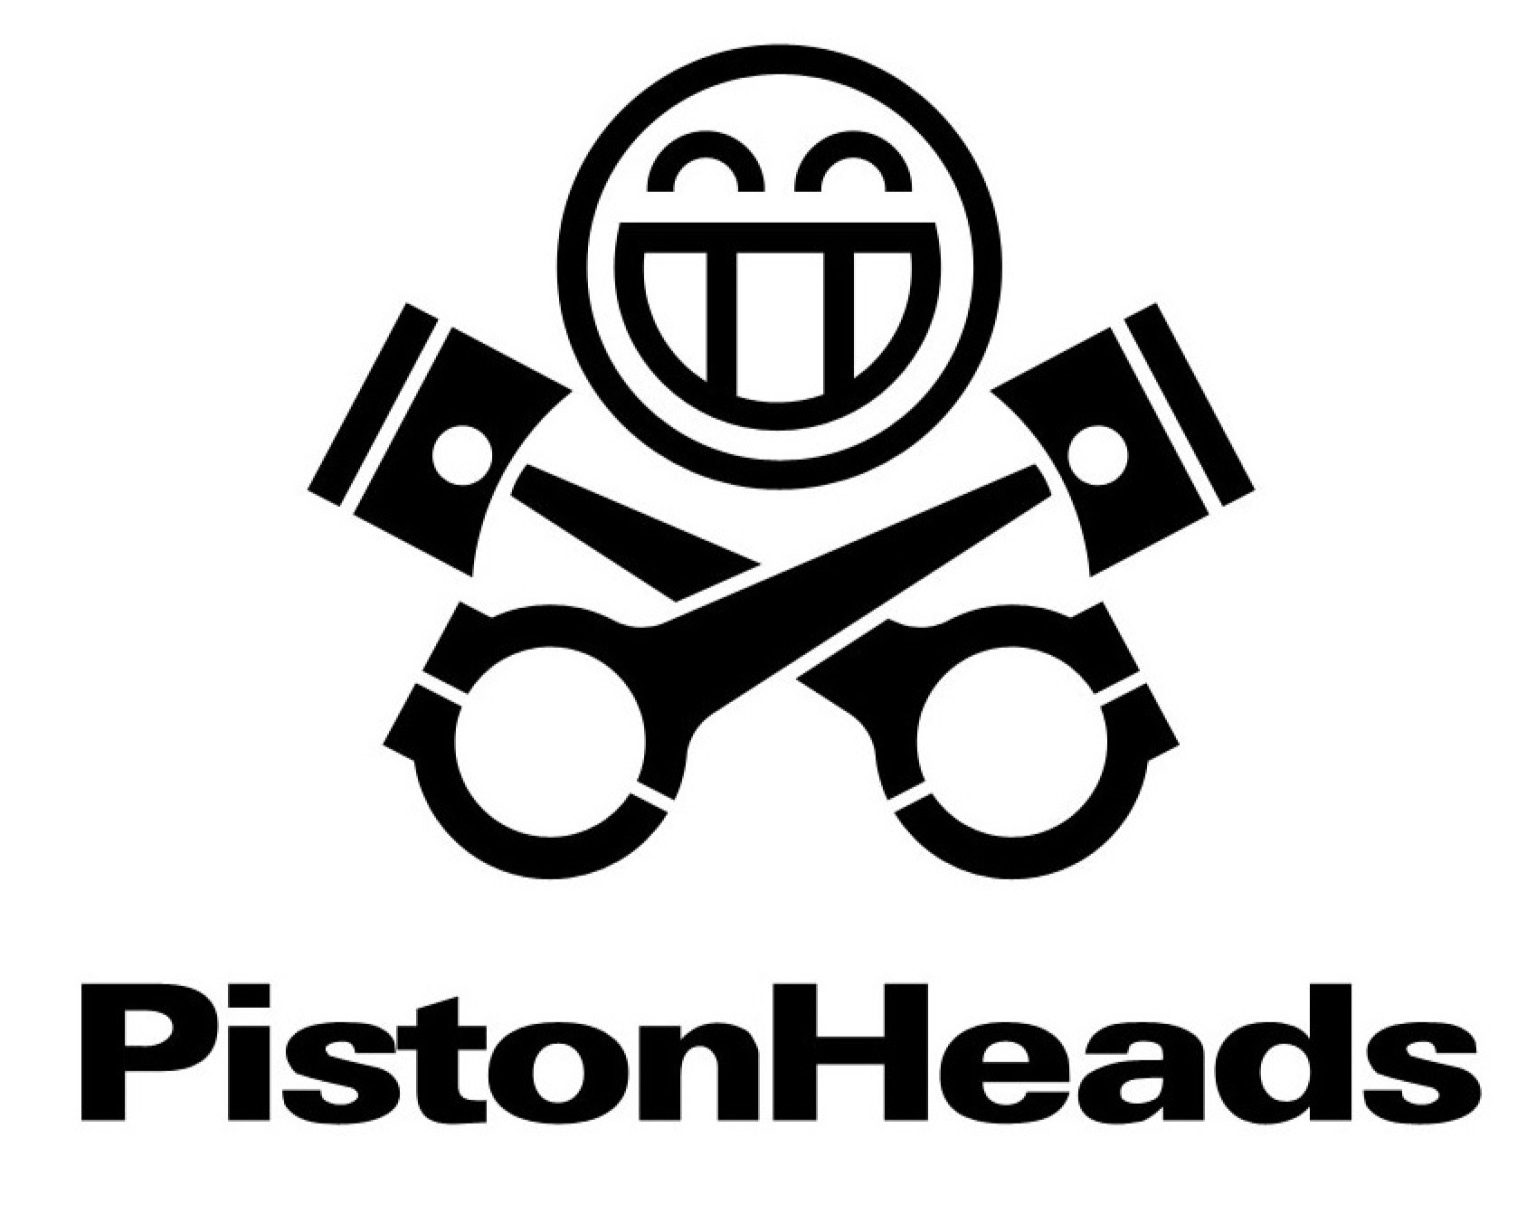 Pistonheads - Great UK-based forum for car enthusiasts with lots of help and information from members. Regular car events are organised by the team and are focused on people getting out and driving.